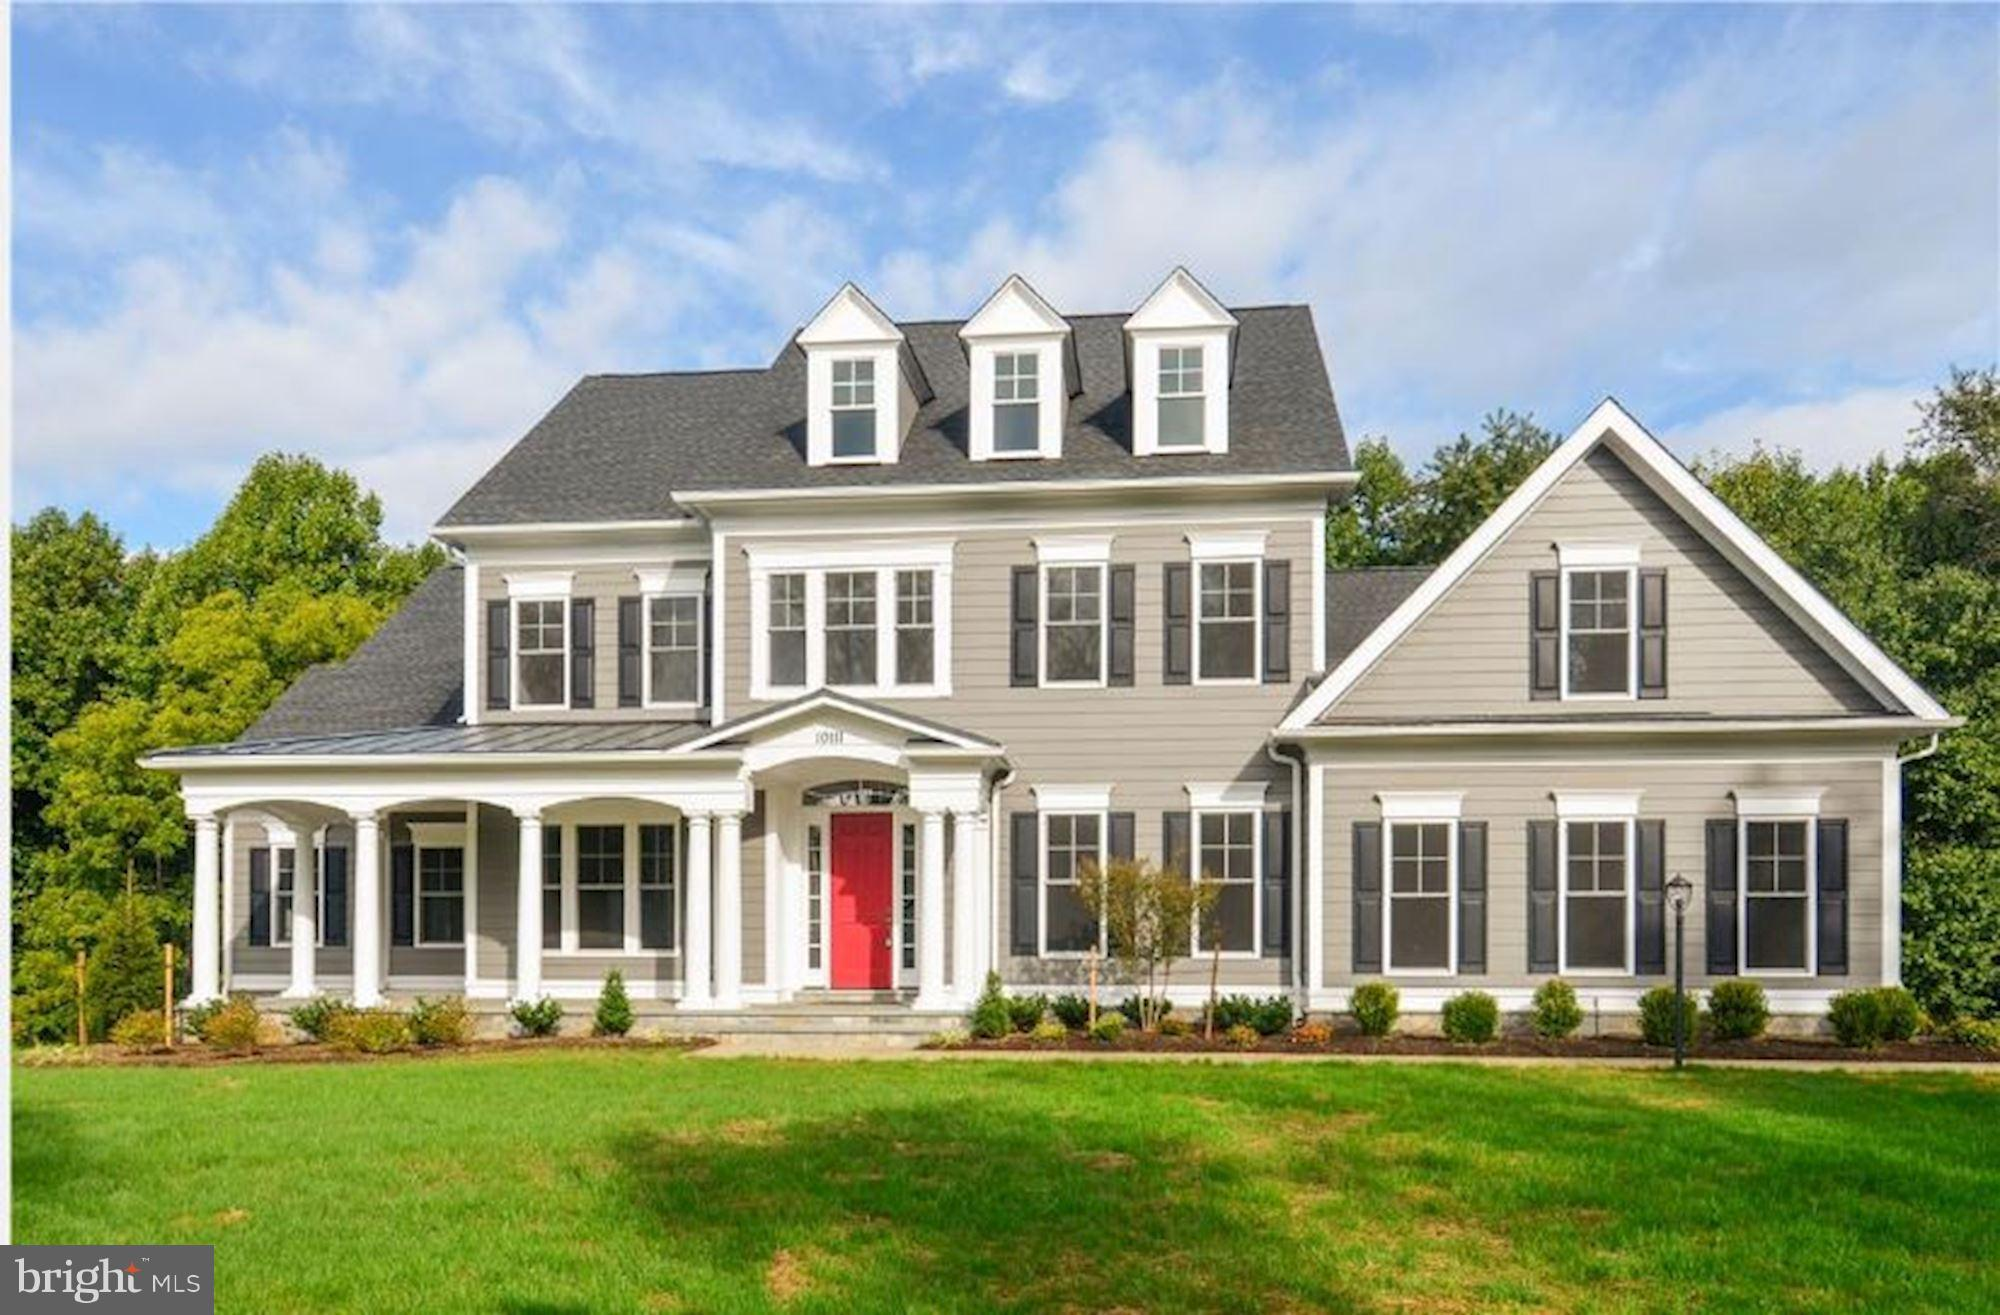 12419 ALL DAUGHTERS LANE, HIGHLAND, MD 20777